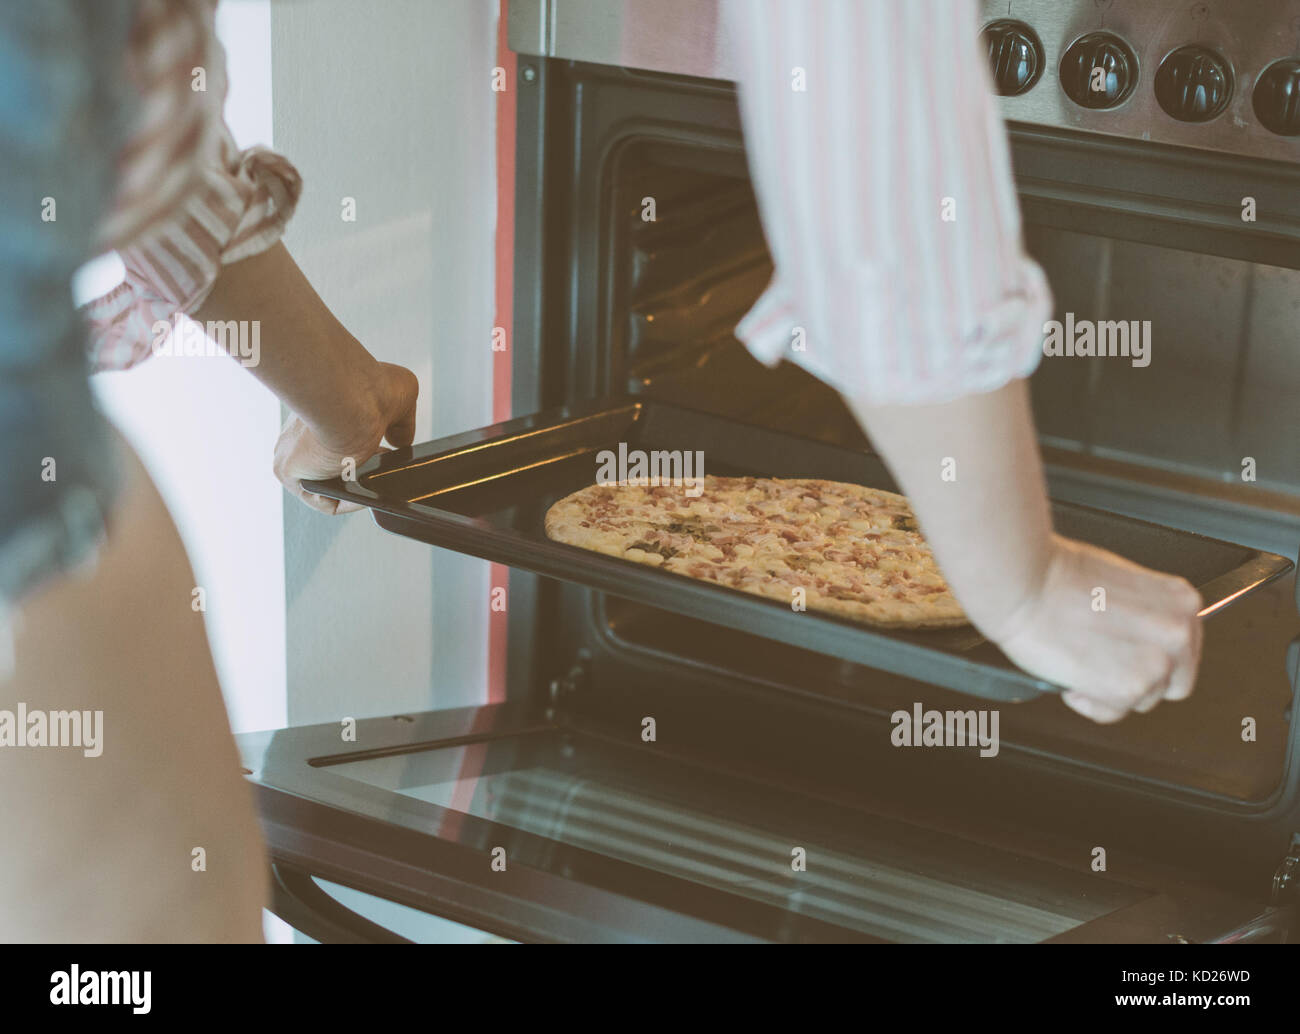 Woman preparing pizza bought in a store. - Stock Image